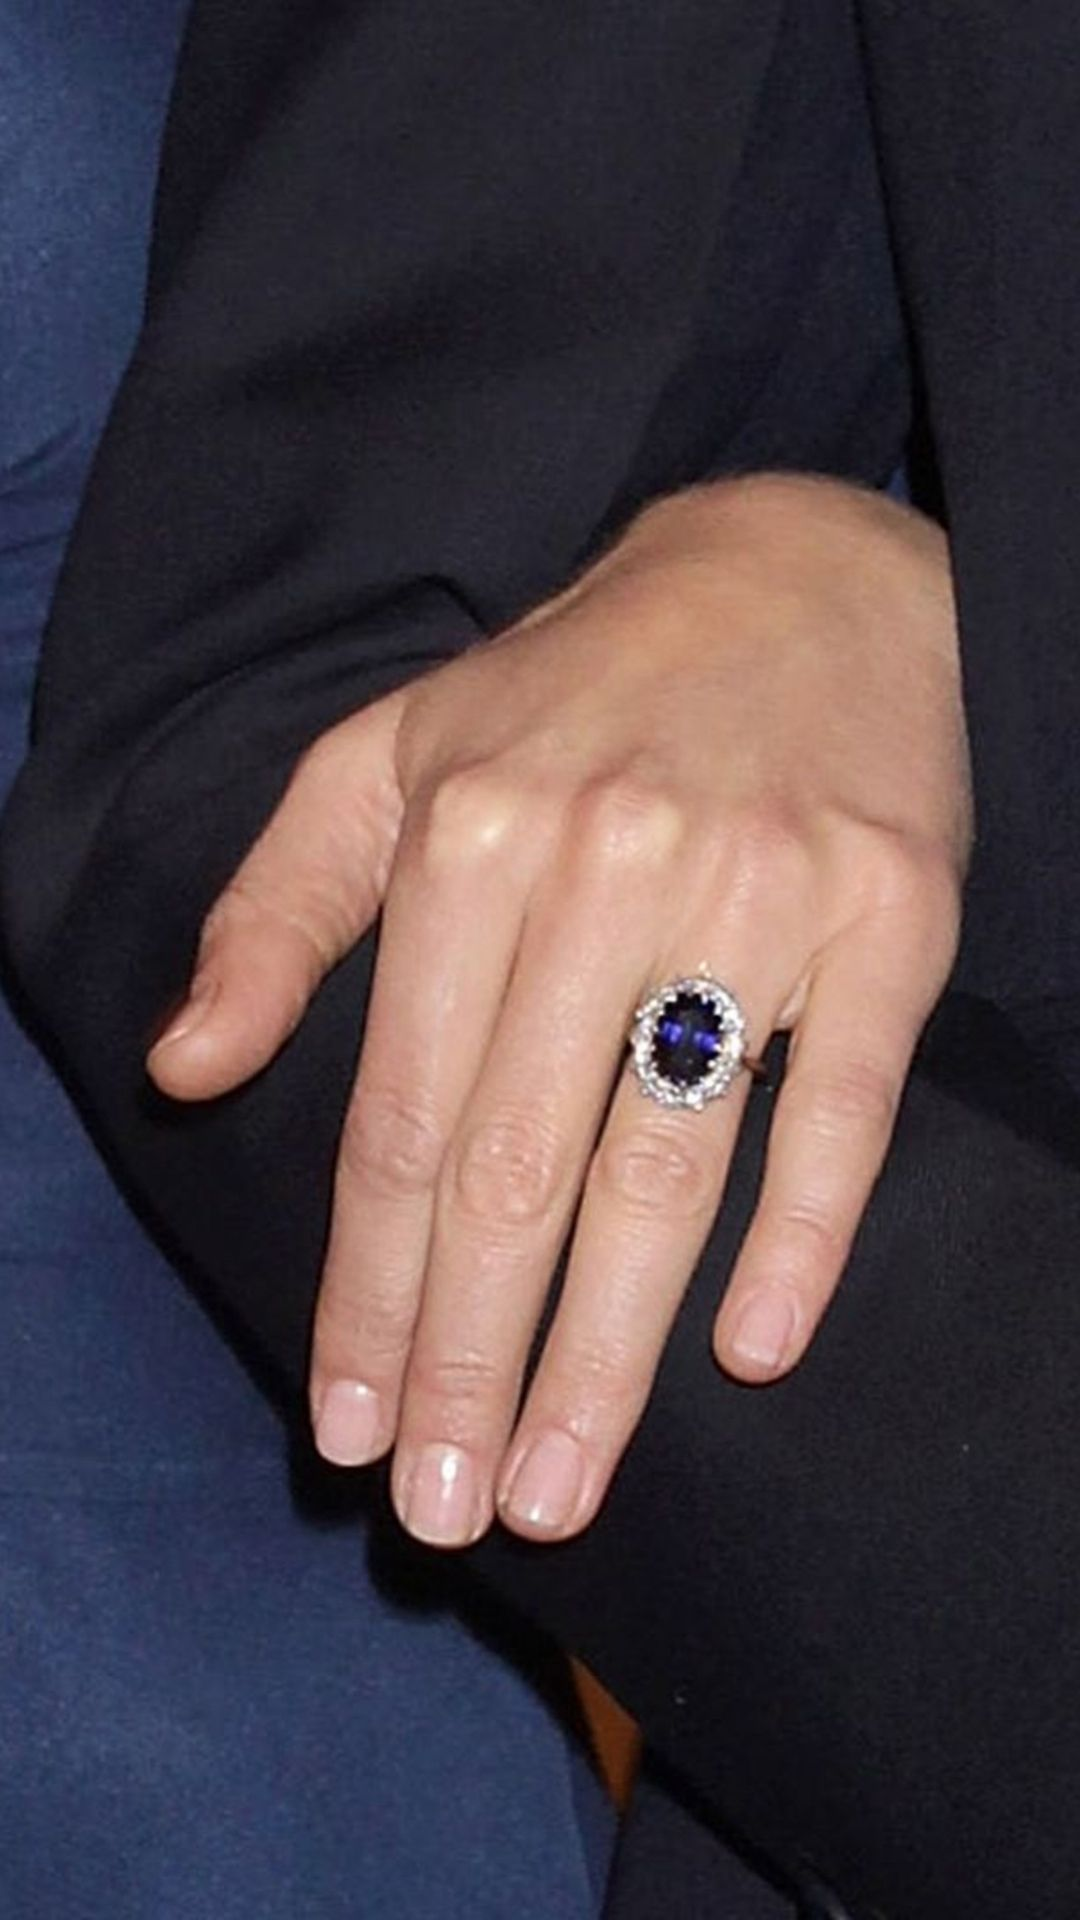 james middleton s engagement ring choice seems to be inspired by kate middleton harper s bazaar arabia james middleton s engagement ring